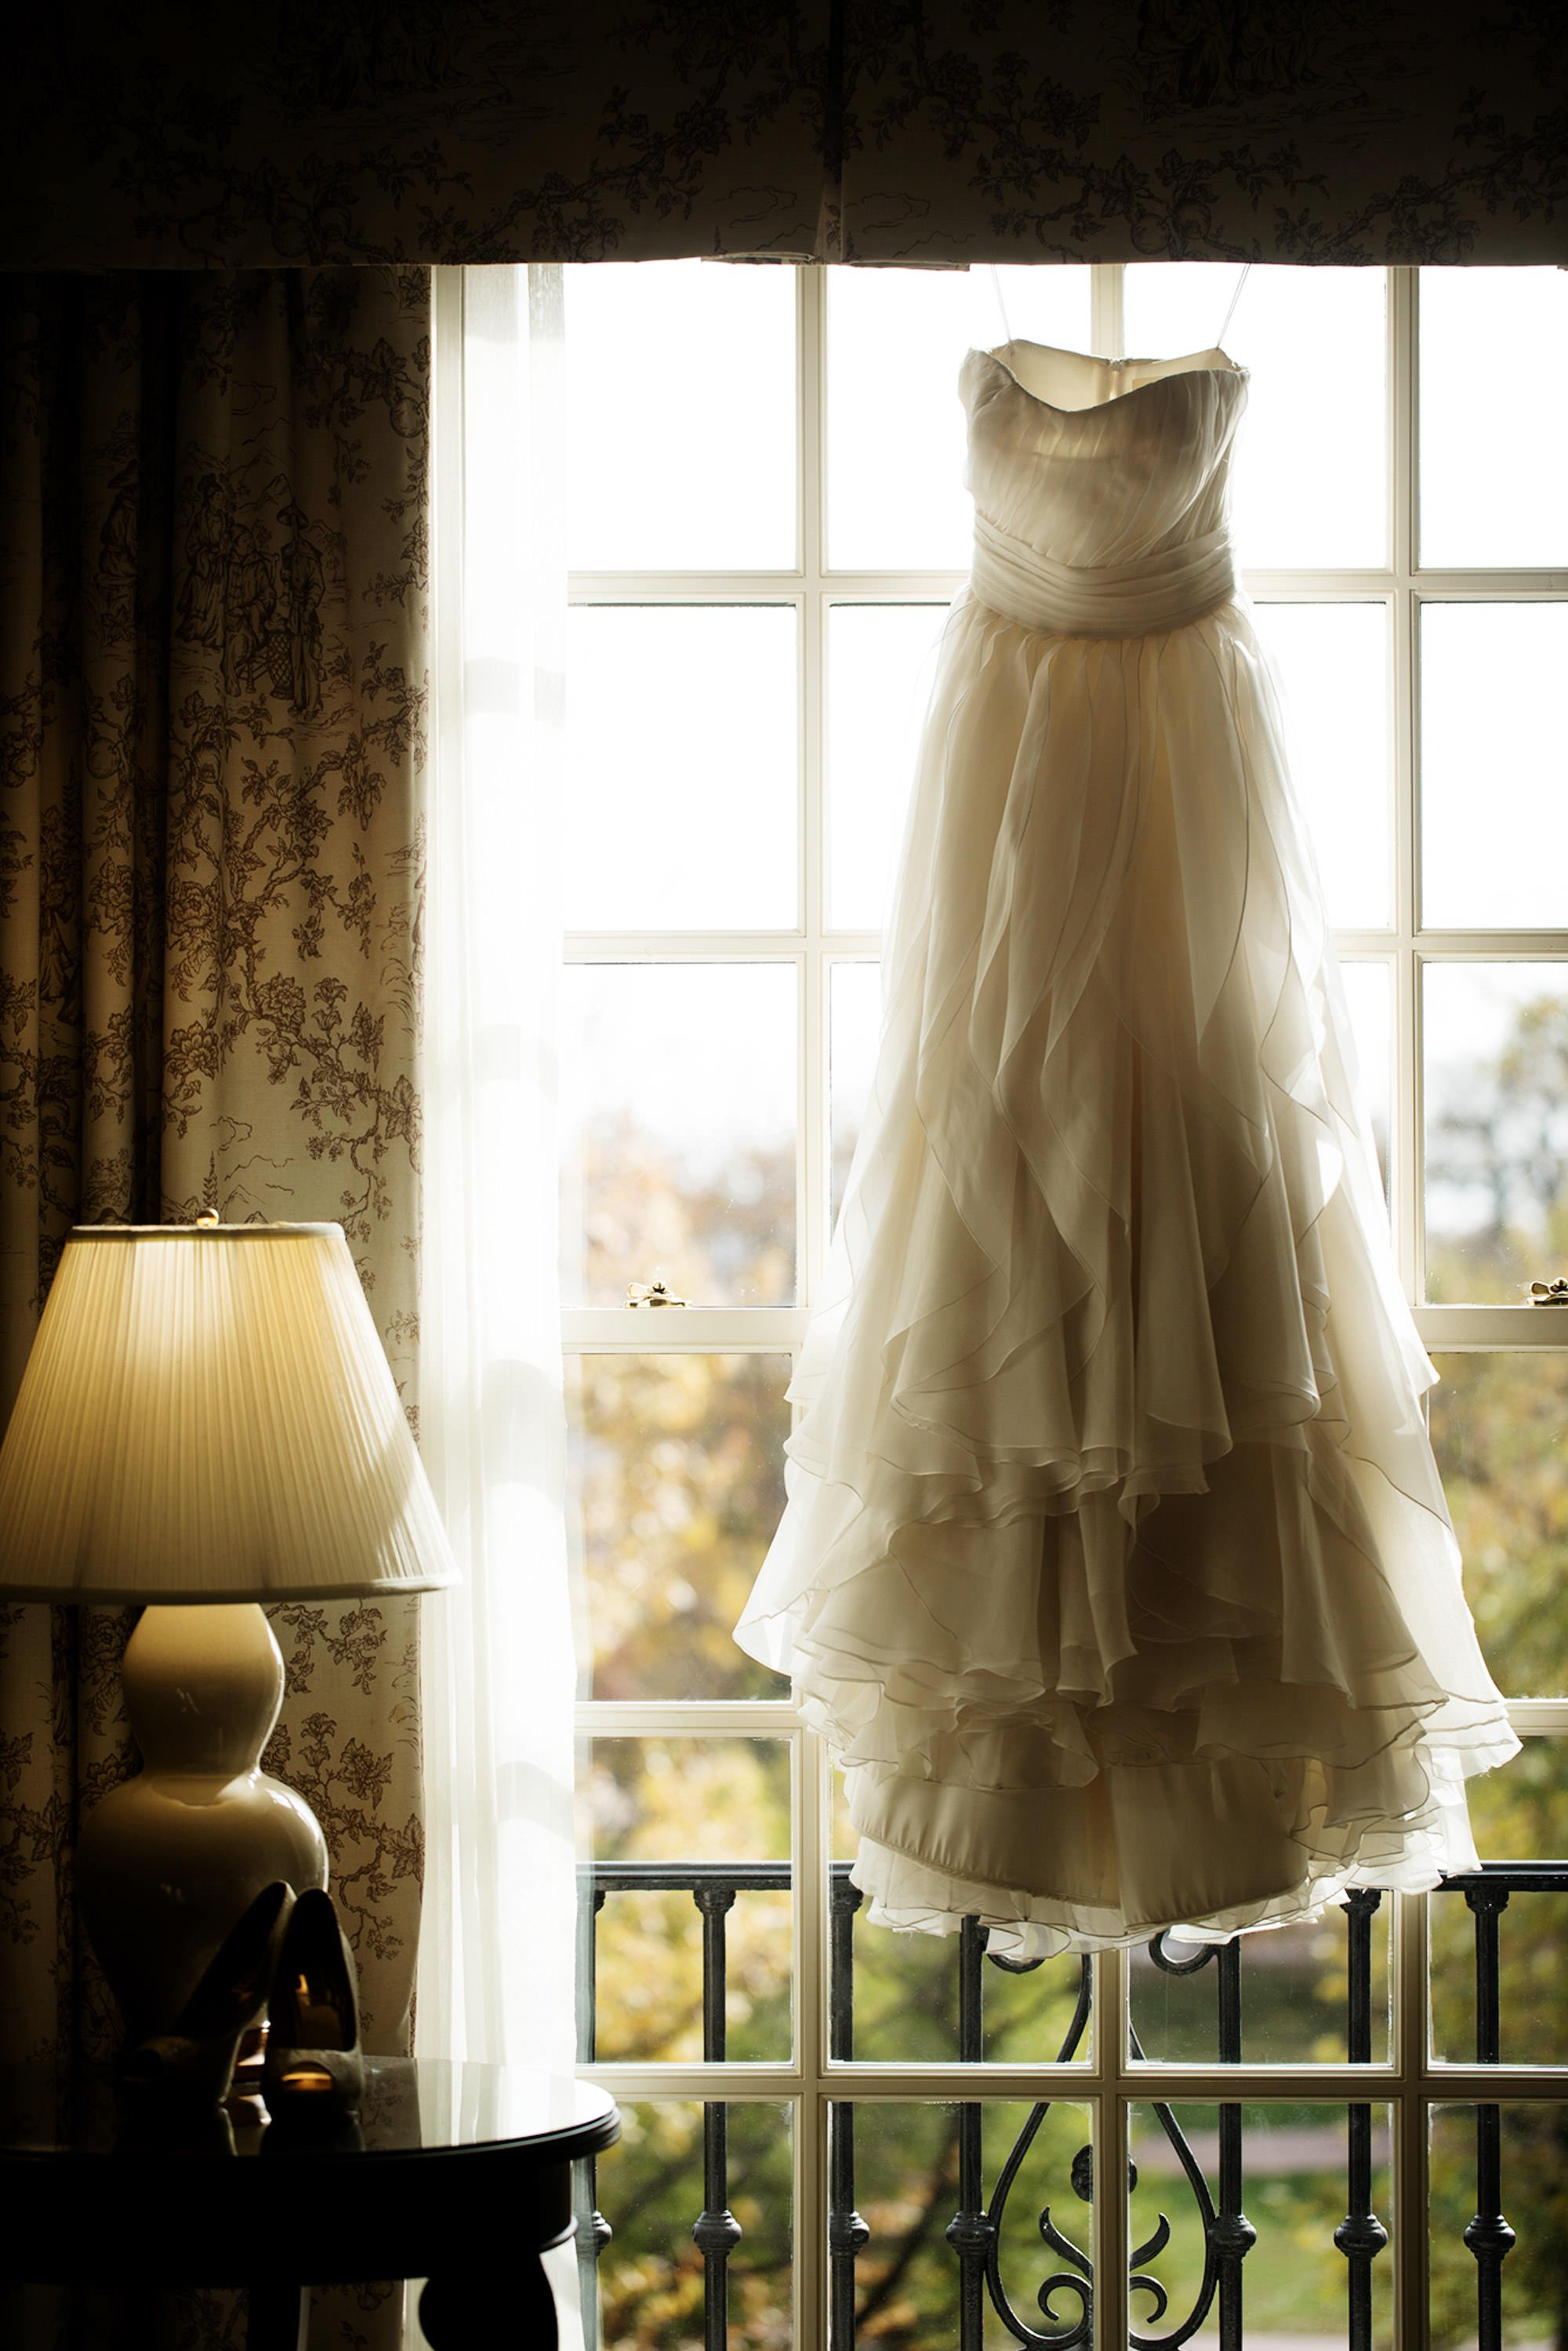 The bride's dress hangs in the Hay Adams hotel before the wedding ceremony.